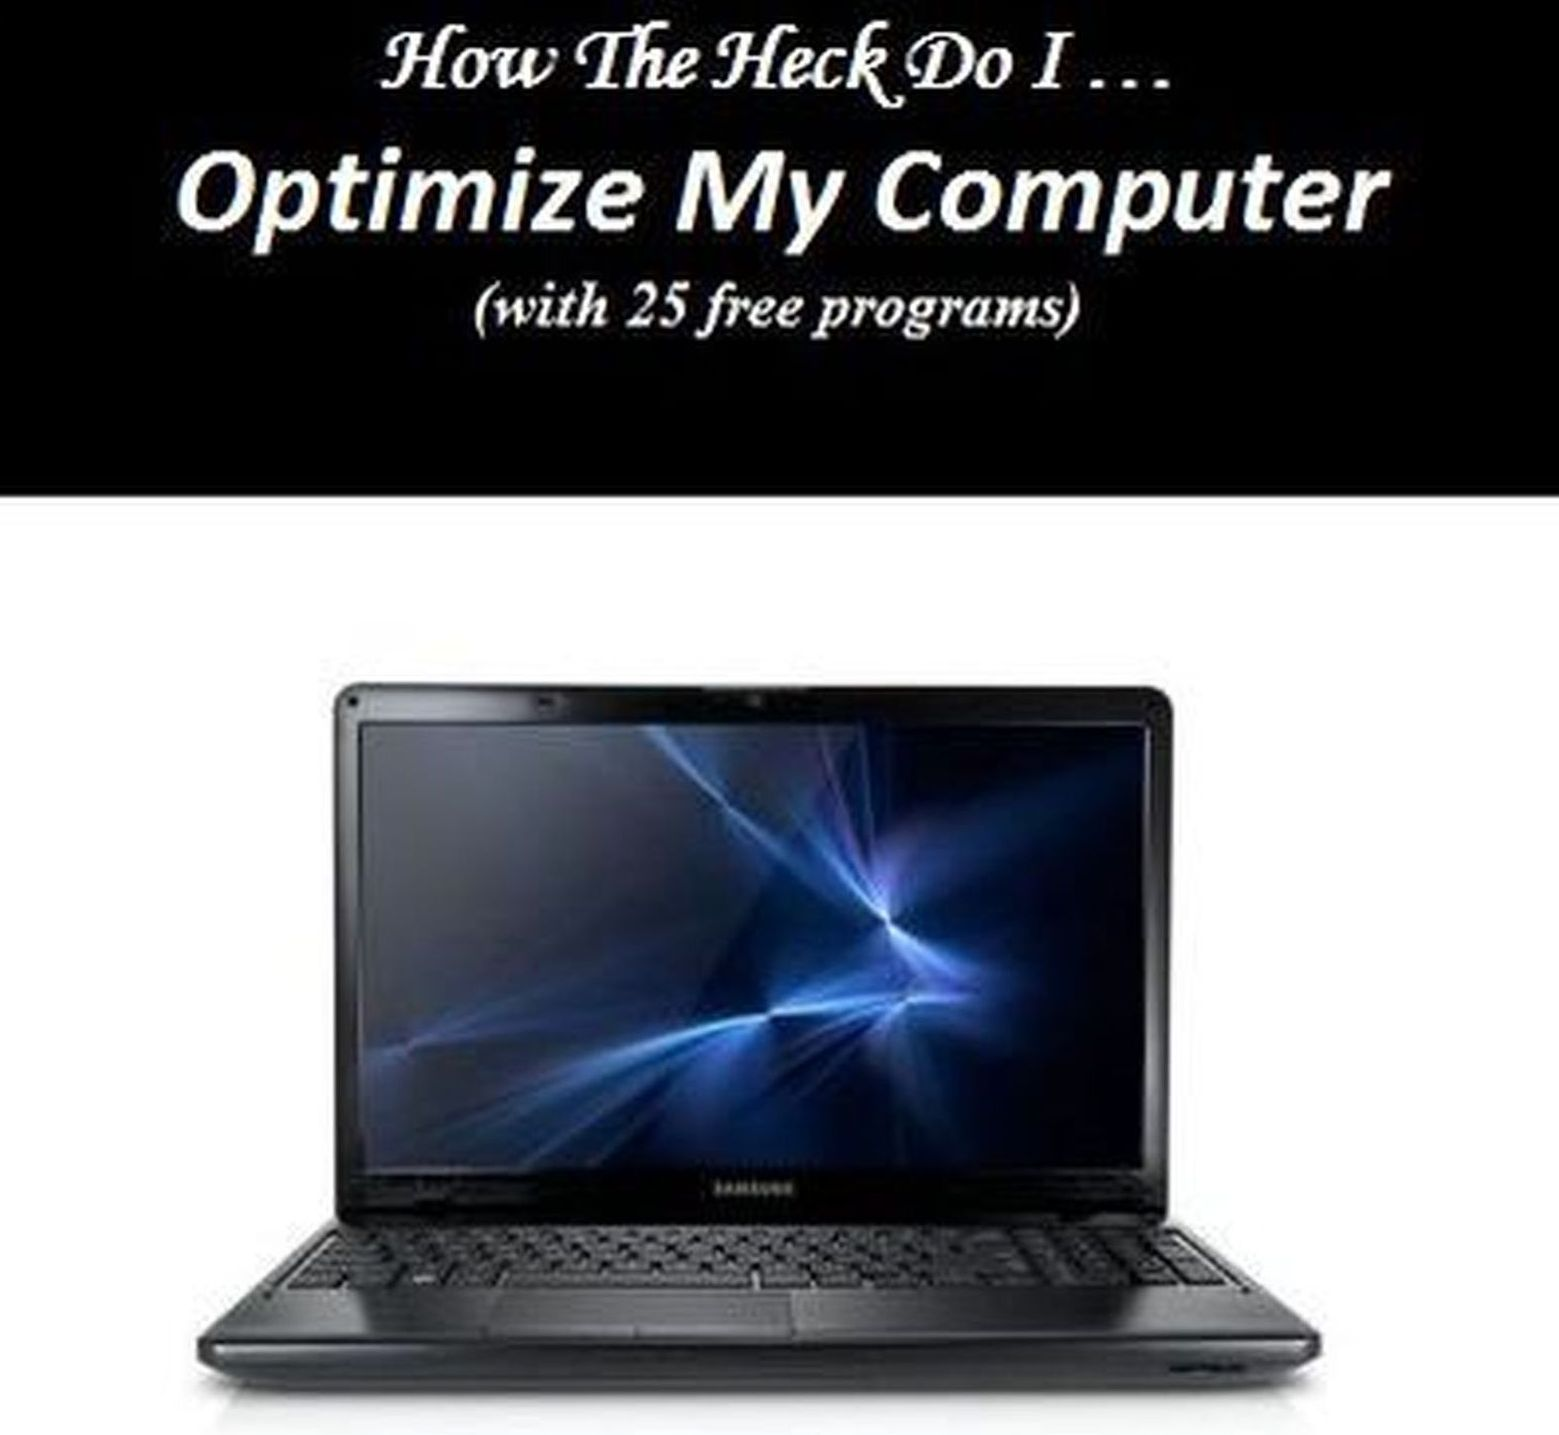 optimize and hopefully speed up your computer to peak performance